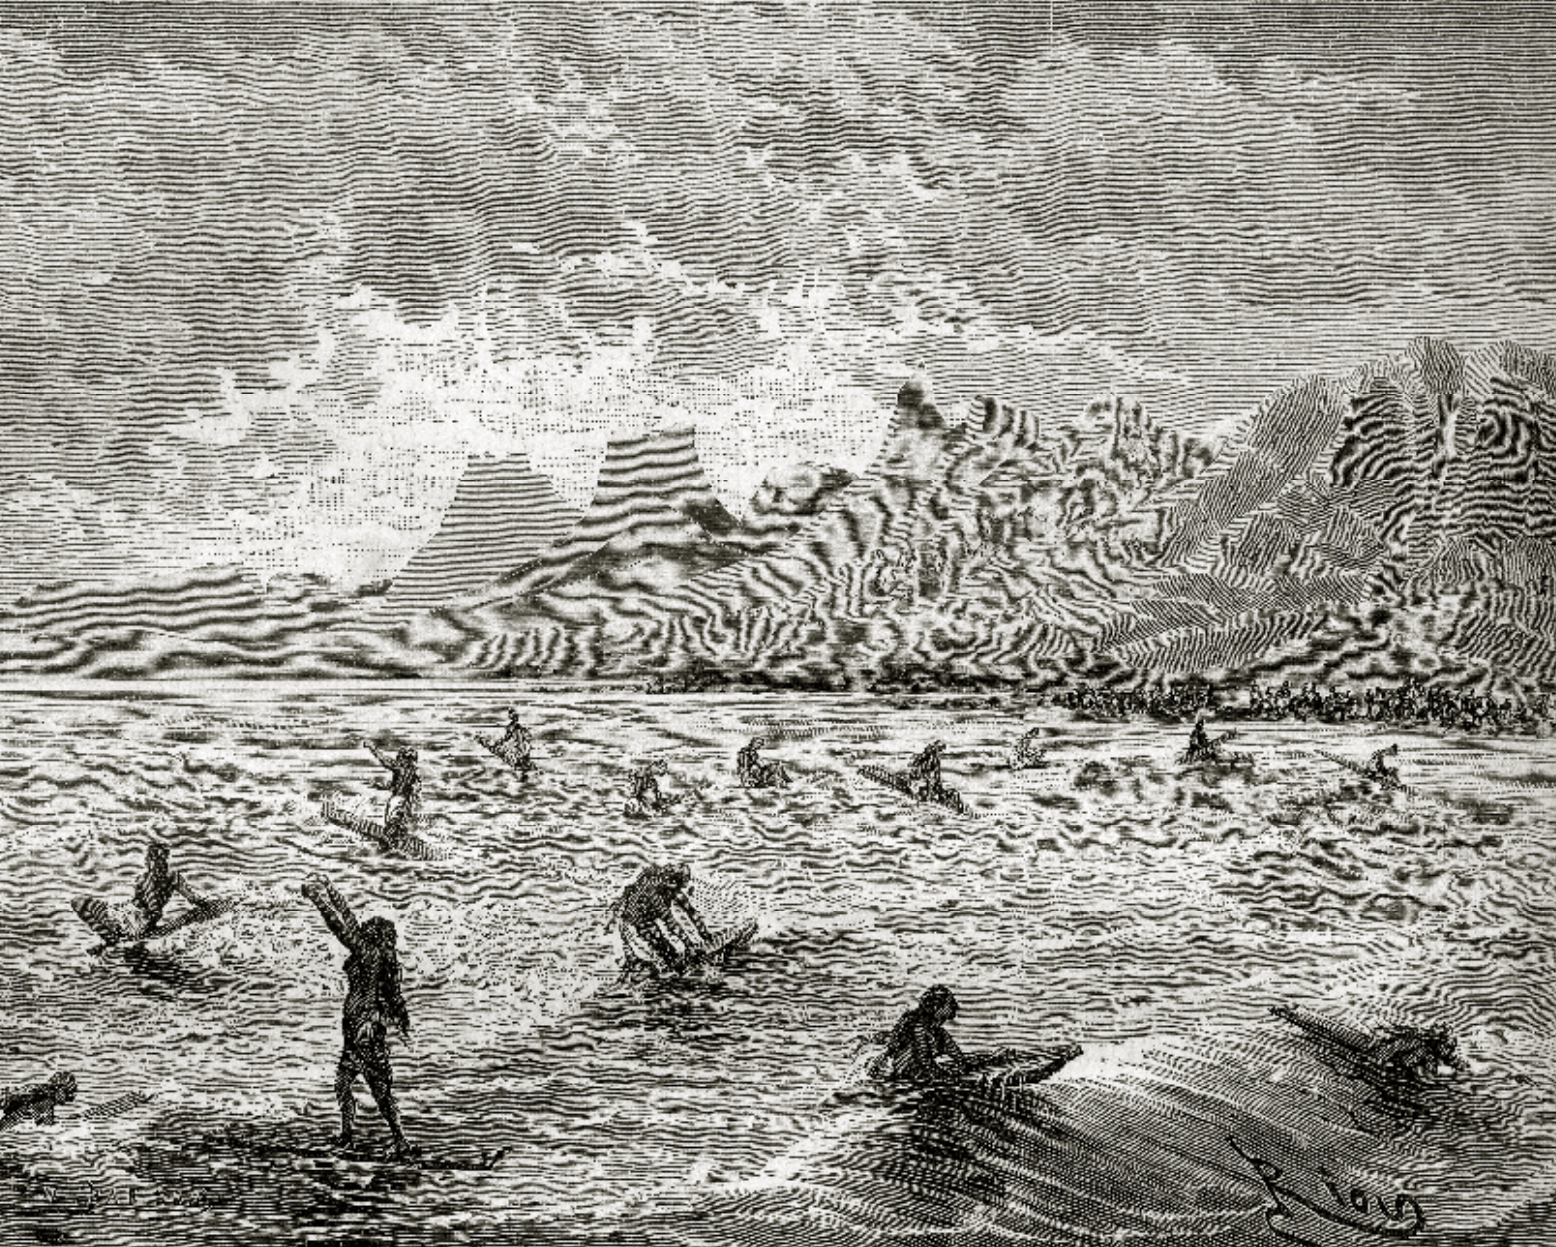 Jeux havaiens, or, Hawaiians playing, depicting women surfing from around 1873.